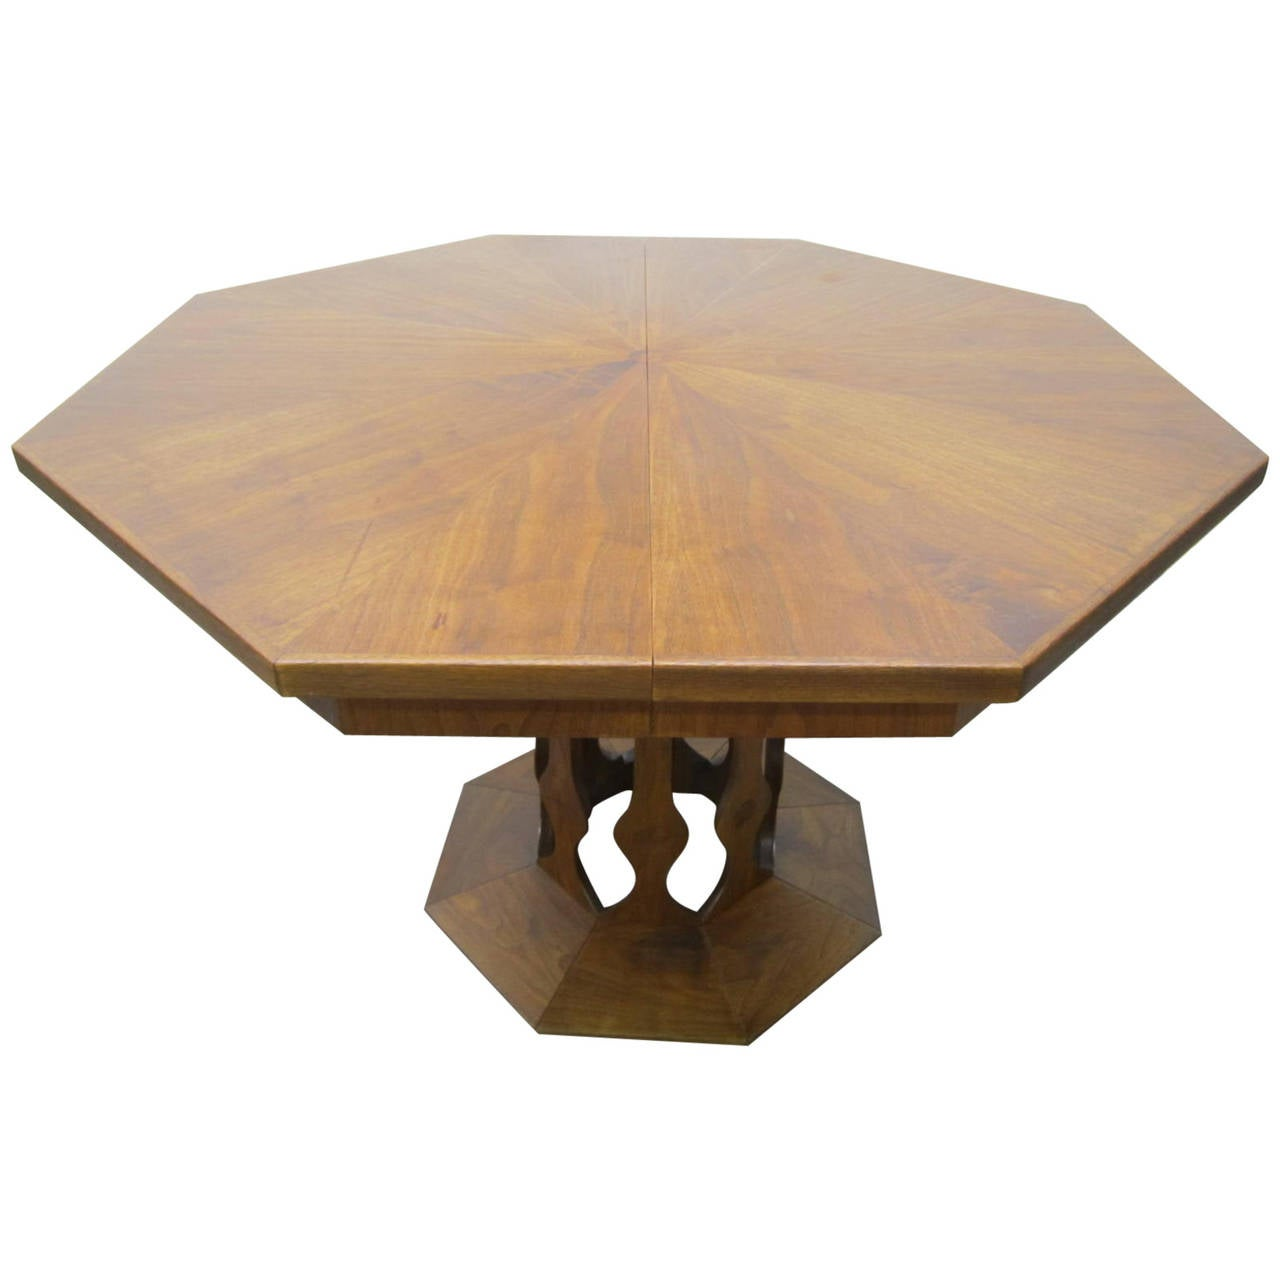 Probber Style Walnut Octagon Three-Leaf Extension Table, Mid-Century Modern For Sale at 1stdibs